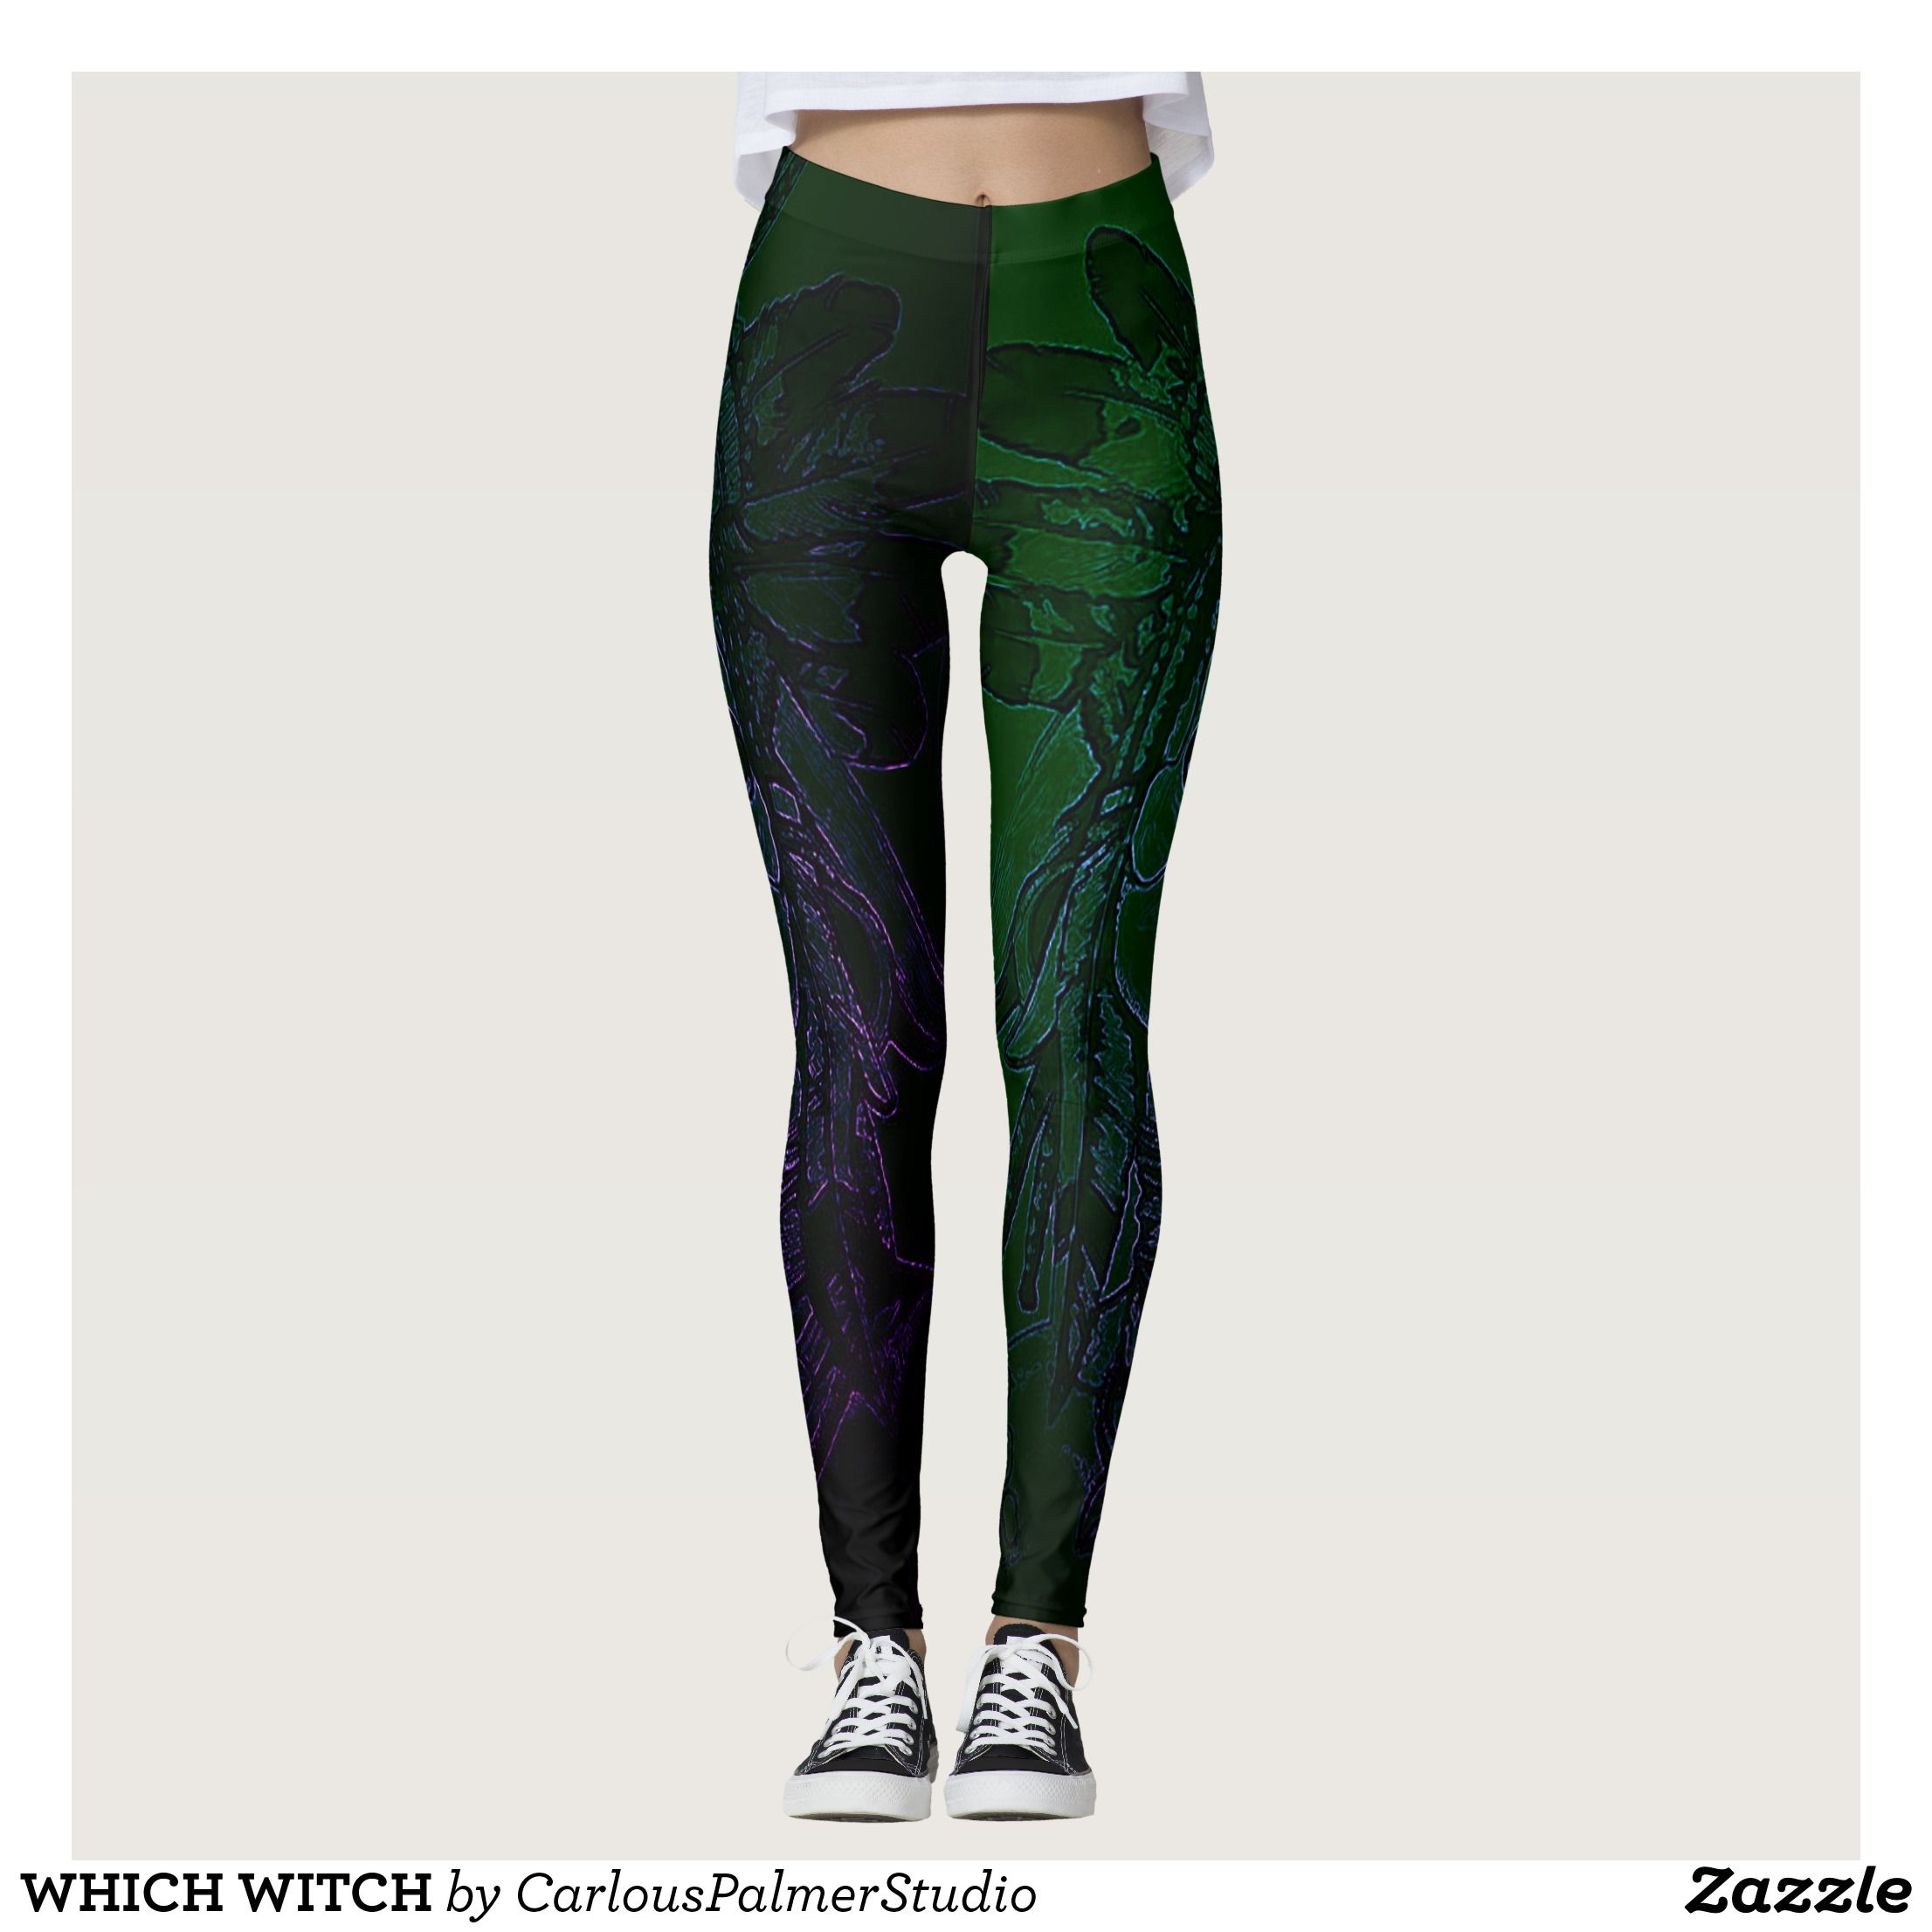 966deb46e257e WHICH WITCH LEGGINGS : Beautiful #Yoga Pants - #Exercise Leggings and  #Running Tights